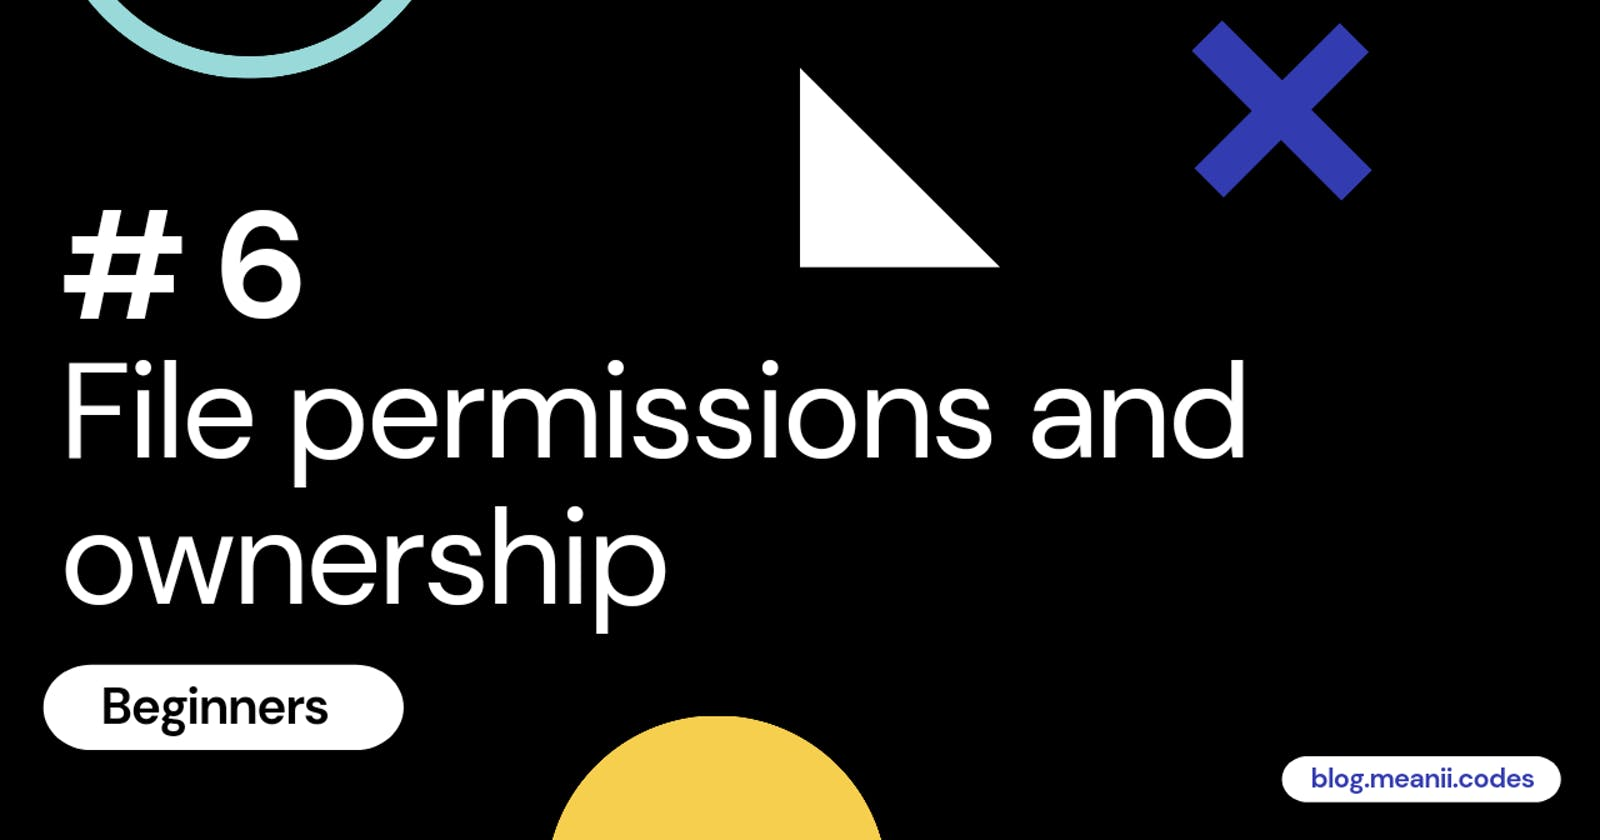 # 6 Beginners - File permissions and ownership